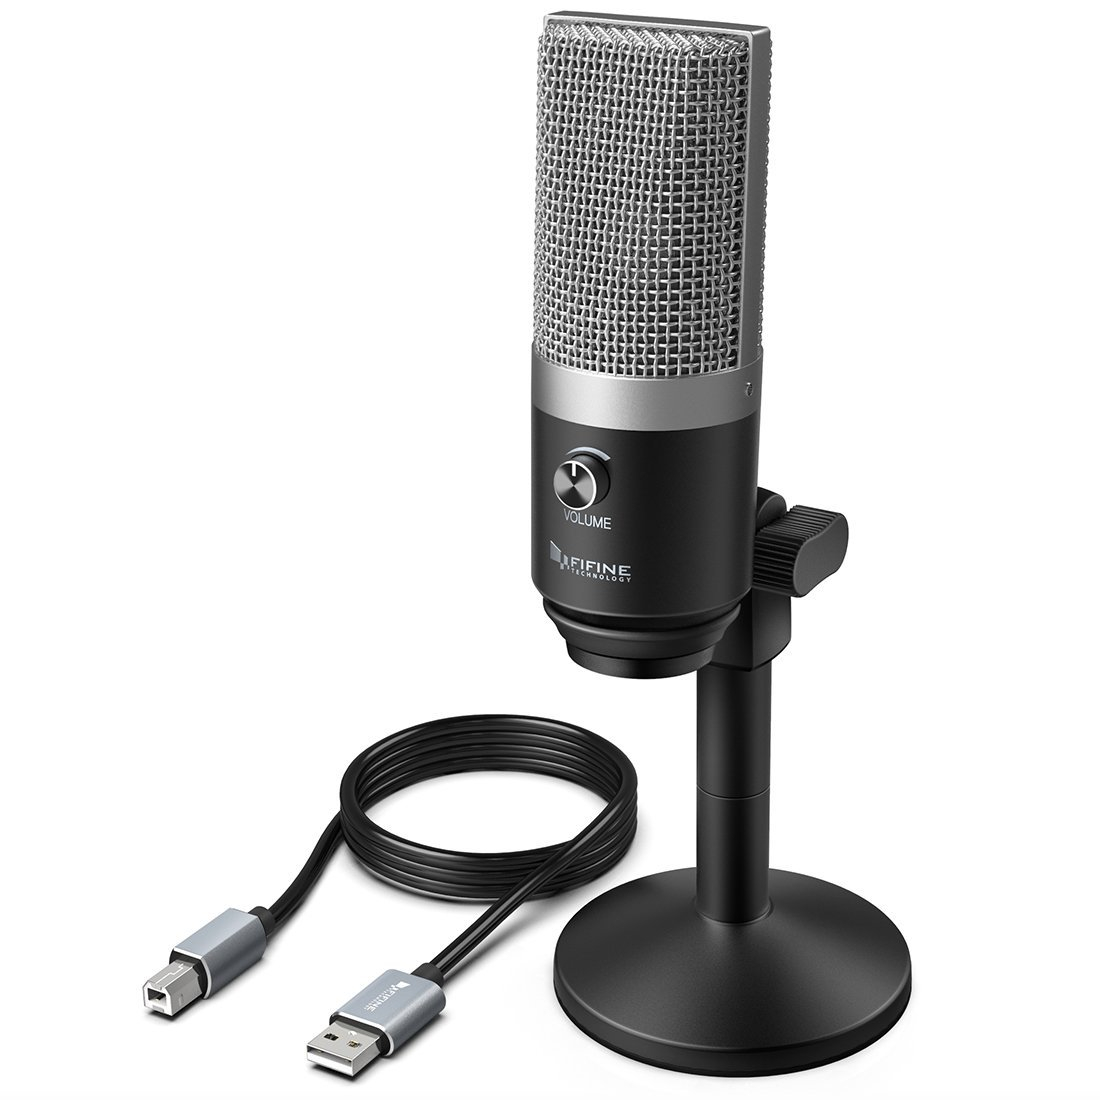 USB Microphone,FIFINE PC Microphone for Mac and Windows Computers,Optimized for Recording,Streaming Twitch,Voice overs,Podcasting for Youtube,Skype chats.(K670)